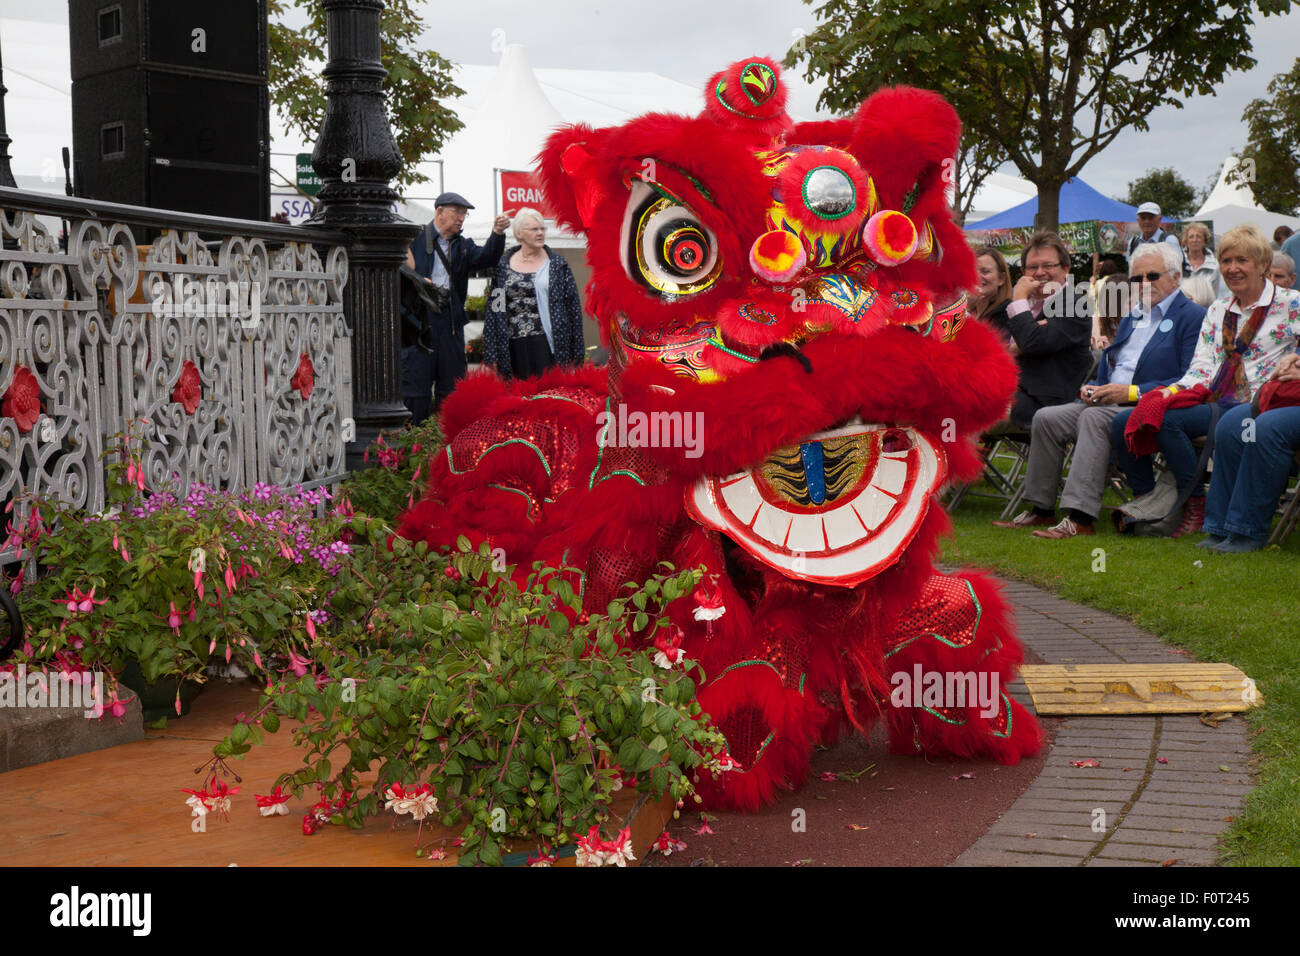 Southport, Merseyside, UK. 20th August, 2015. Red Chinese Dragon, a symbol of good fortune,  at Britain's biggest - Stock Image